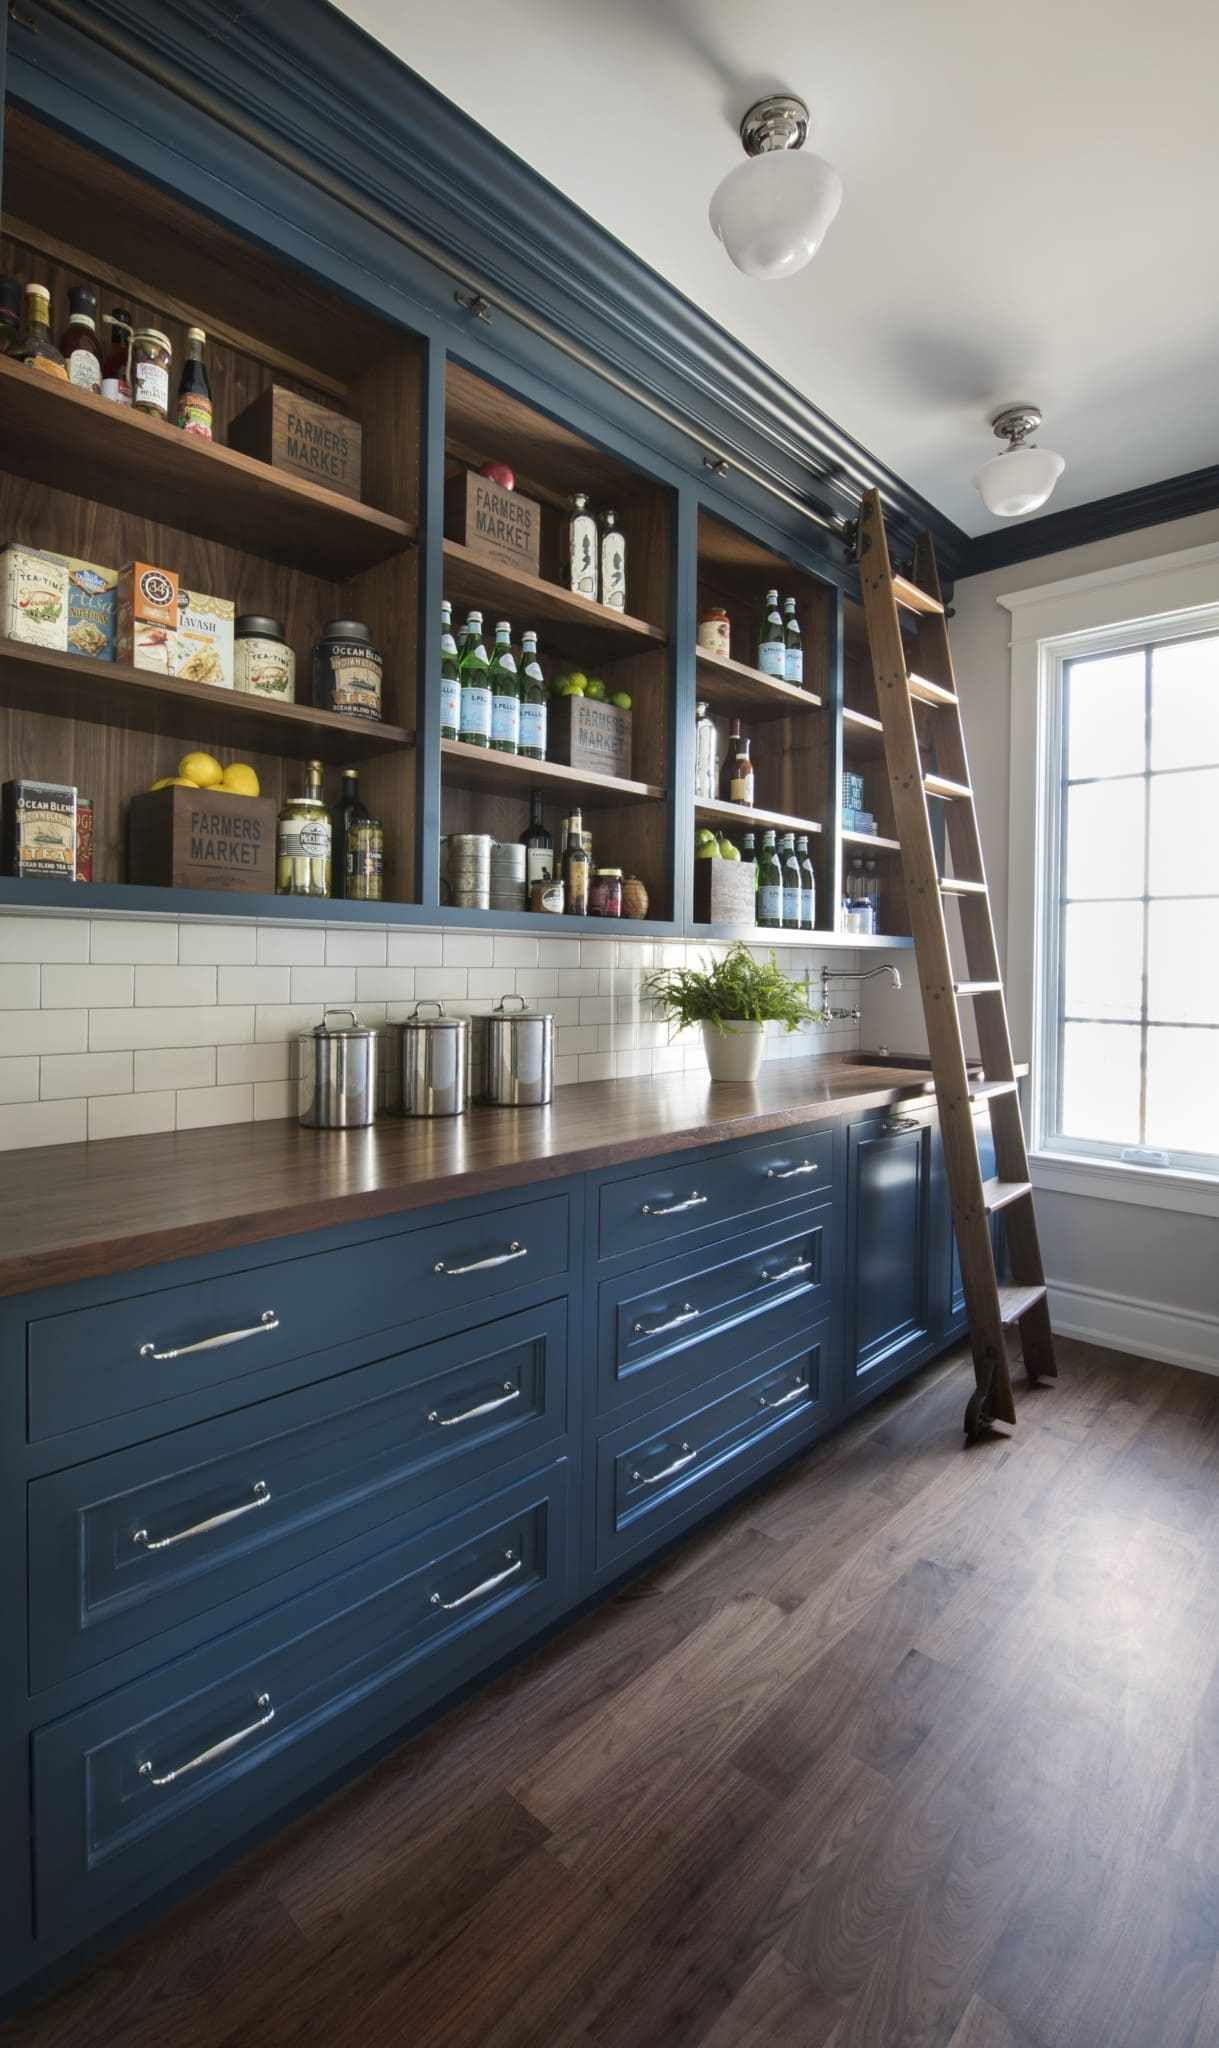 Kitchens Dutch Made Custom Cabinetry Pantry Design Country Kitchen Decor Trending Decor